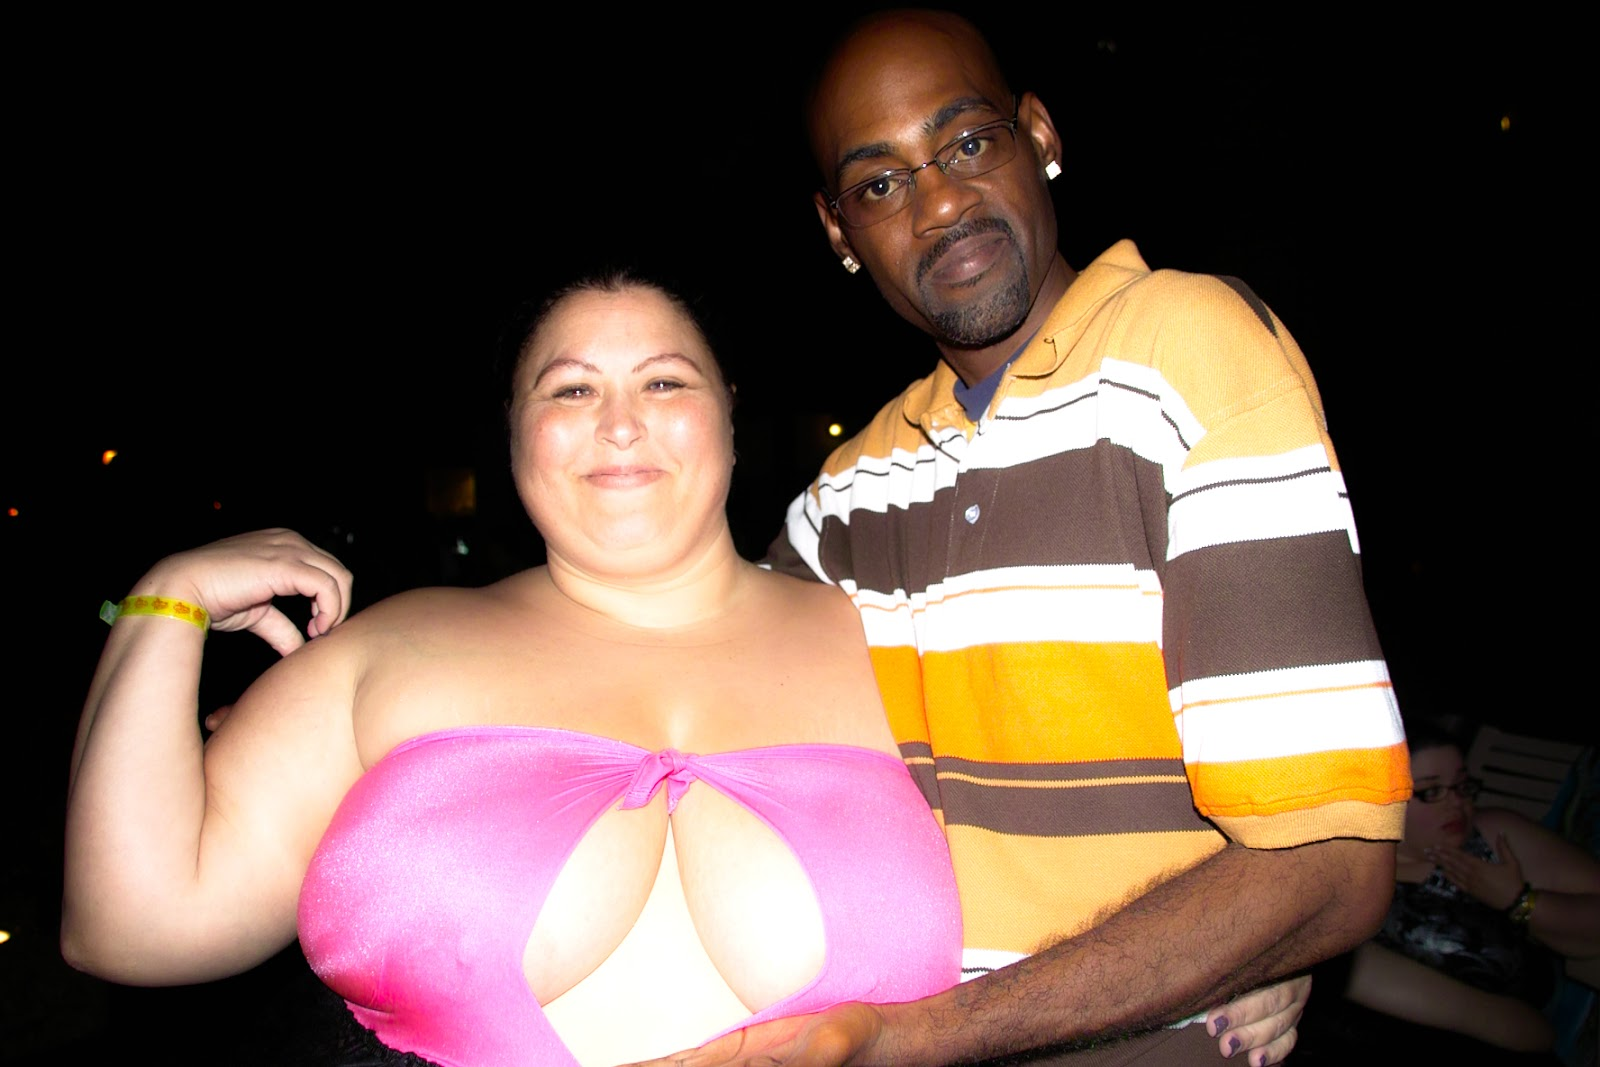 Las vegas bbw bash 2010 that interestingly